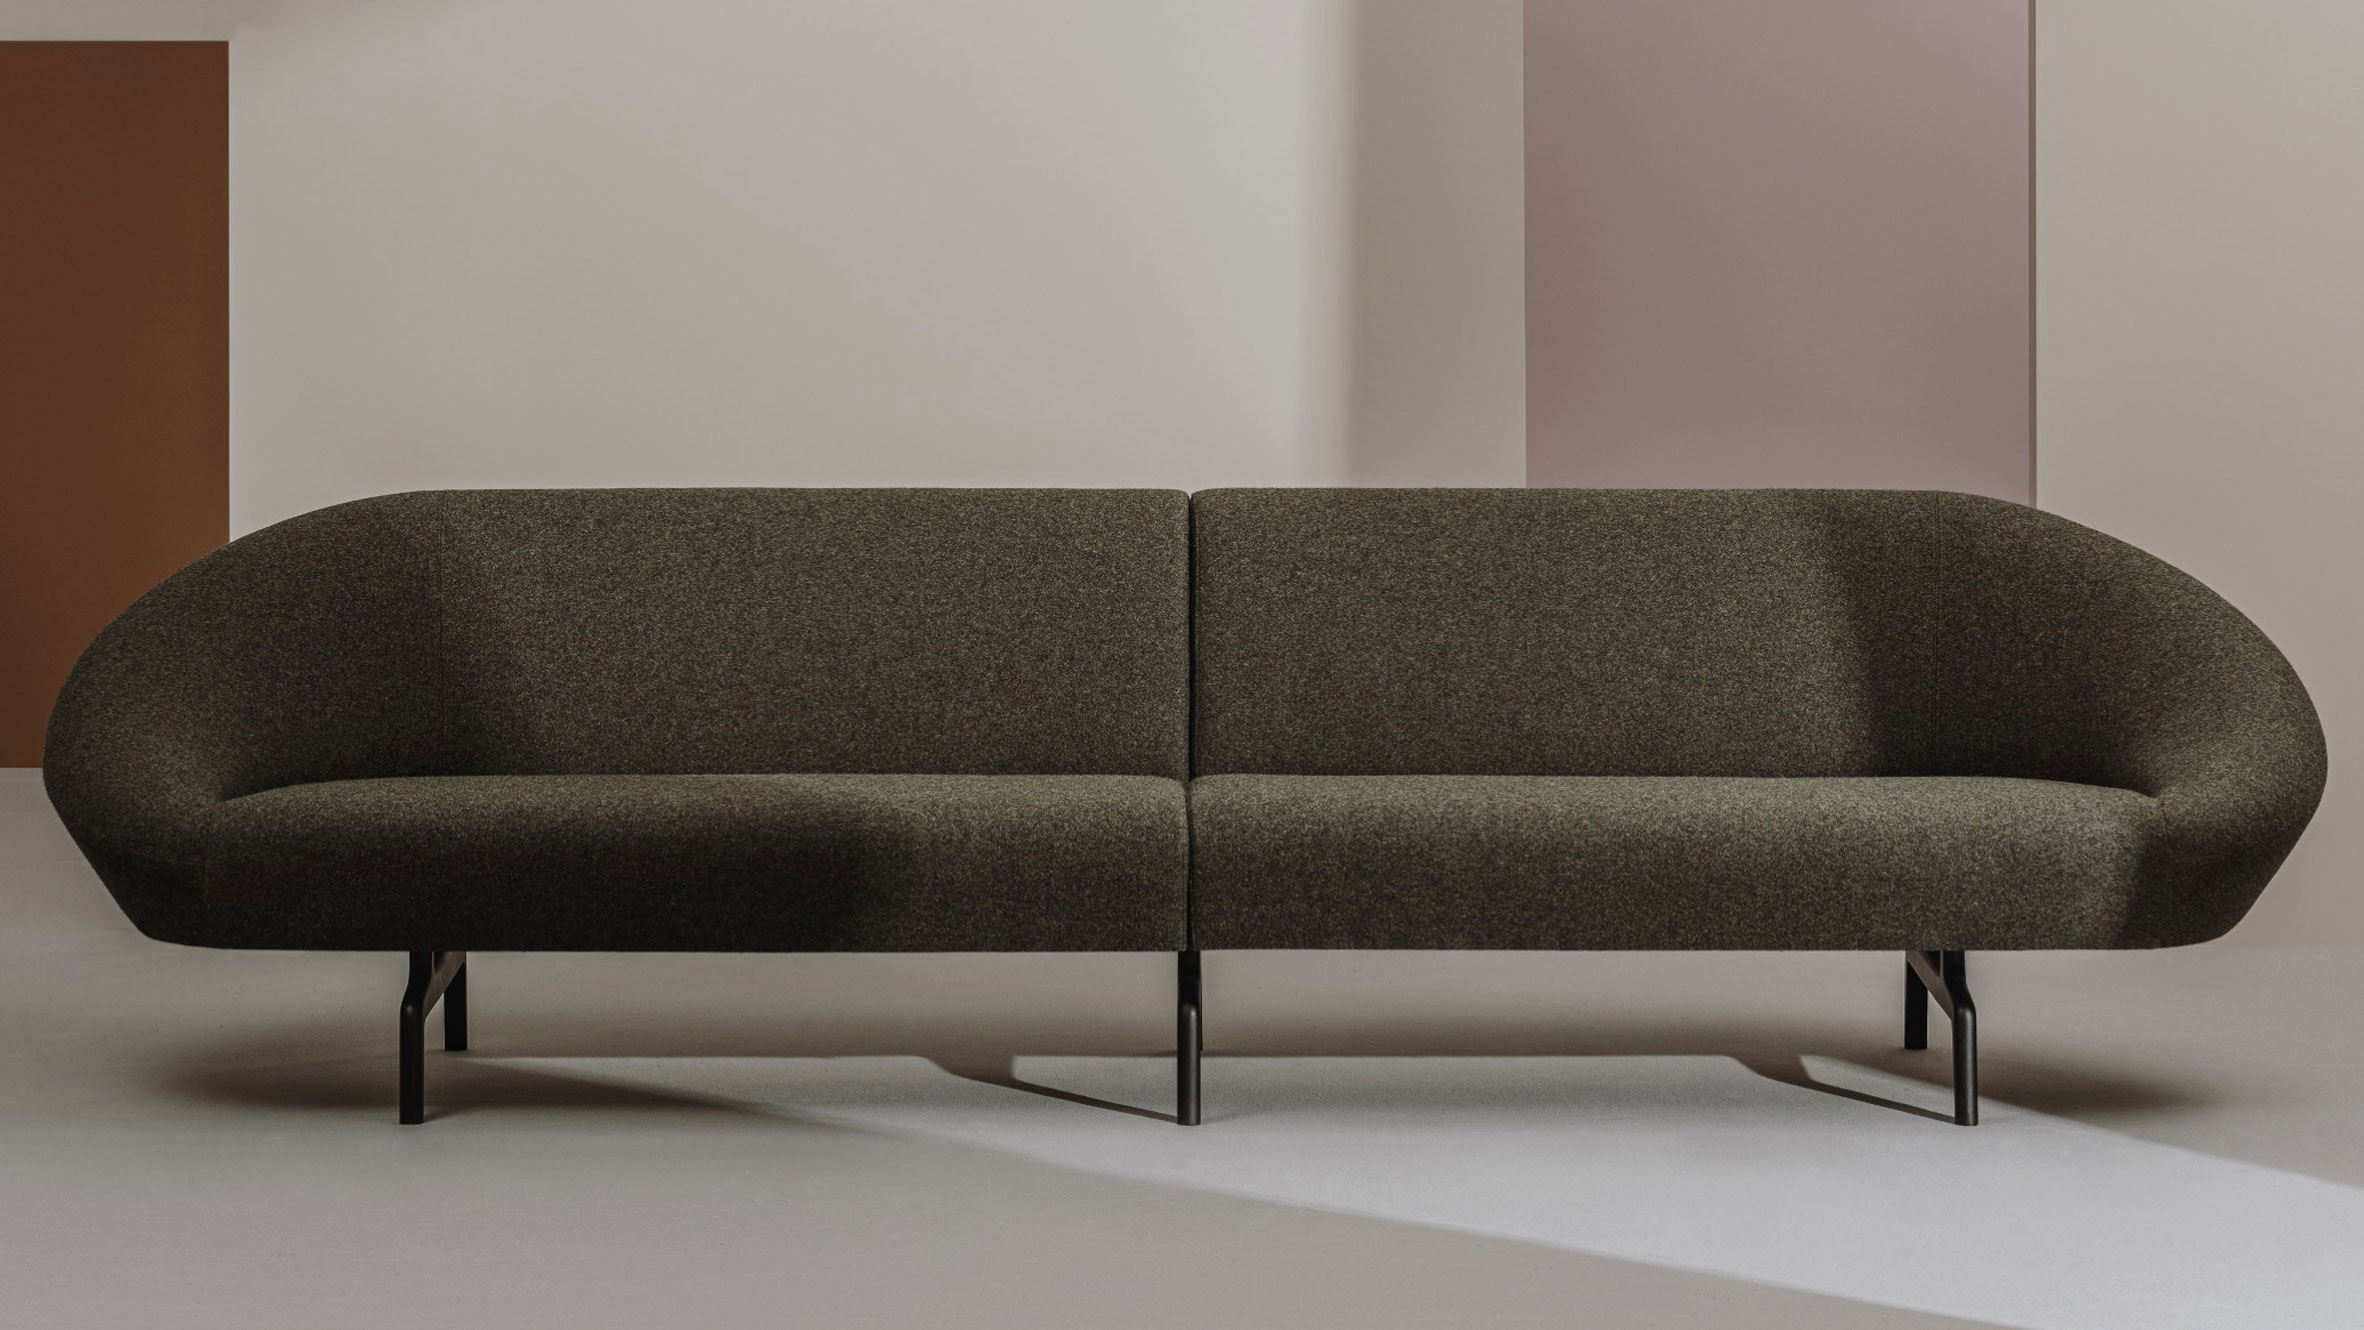 Black Giro Soft sofa by Alfredo Haberli for Andreu World